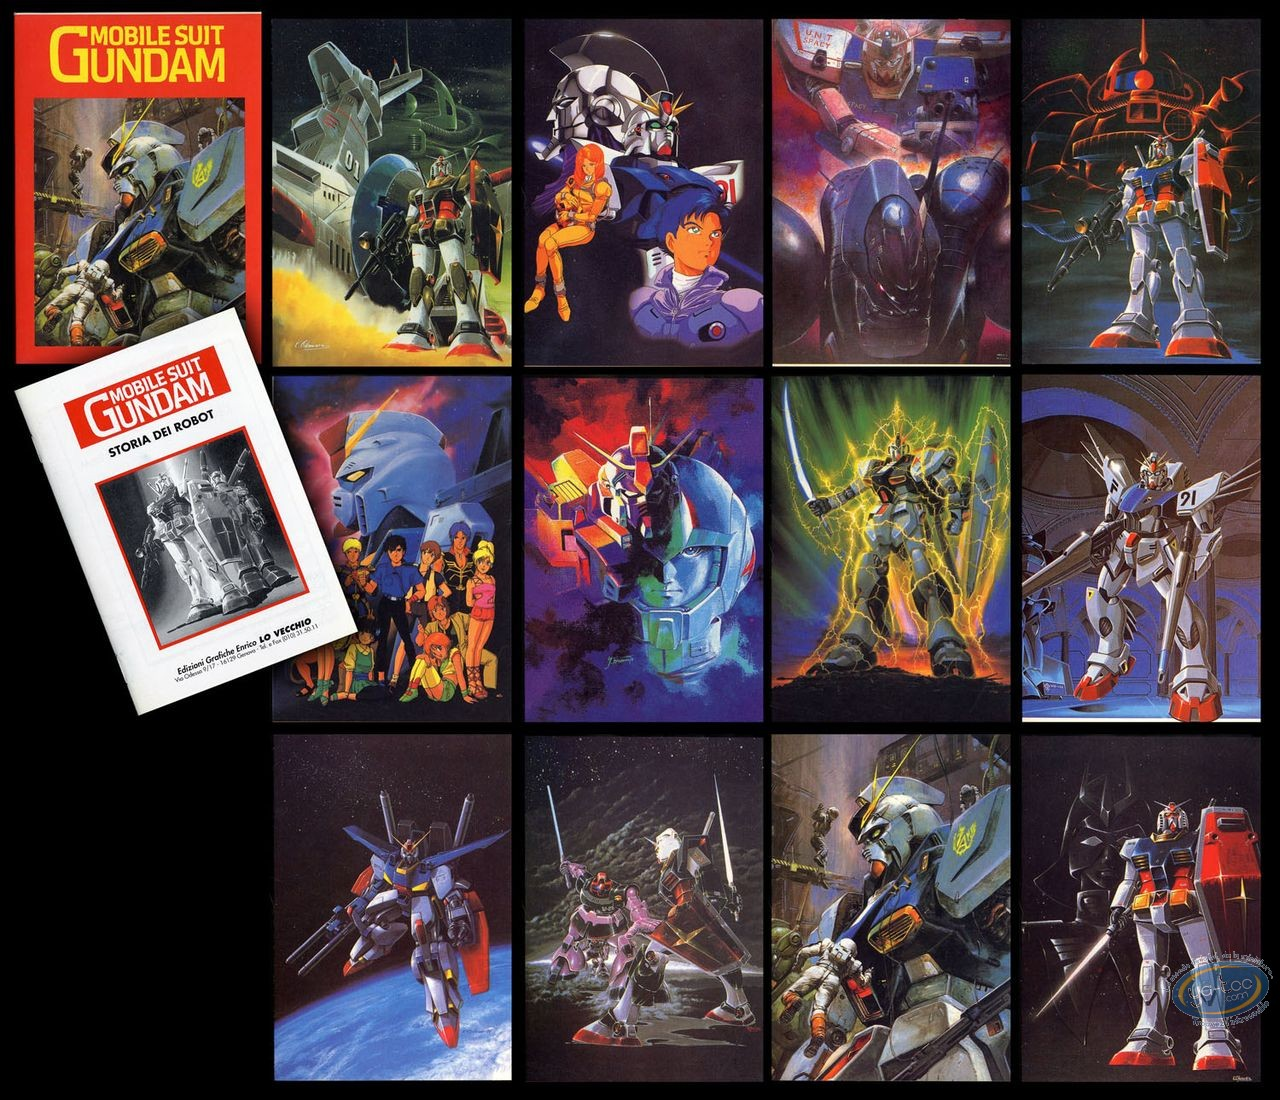 Portfolio, Mobile Suit Gundam : Mobile Suit Gundam